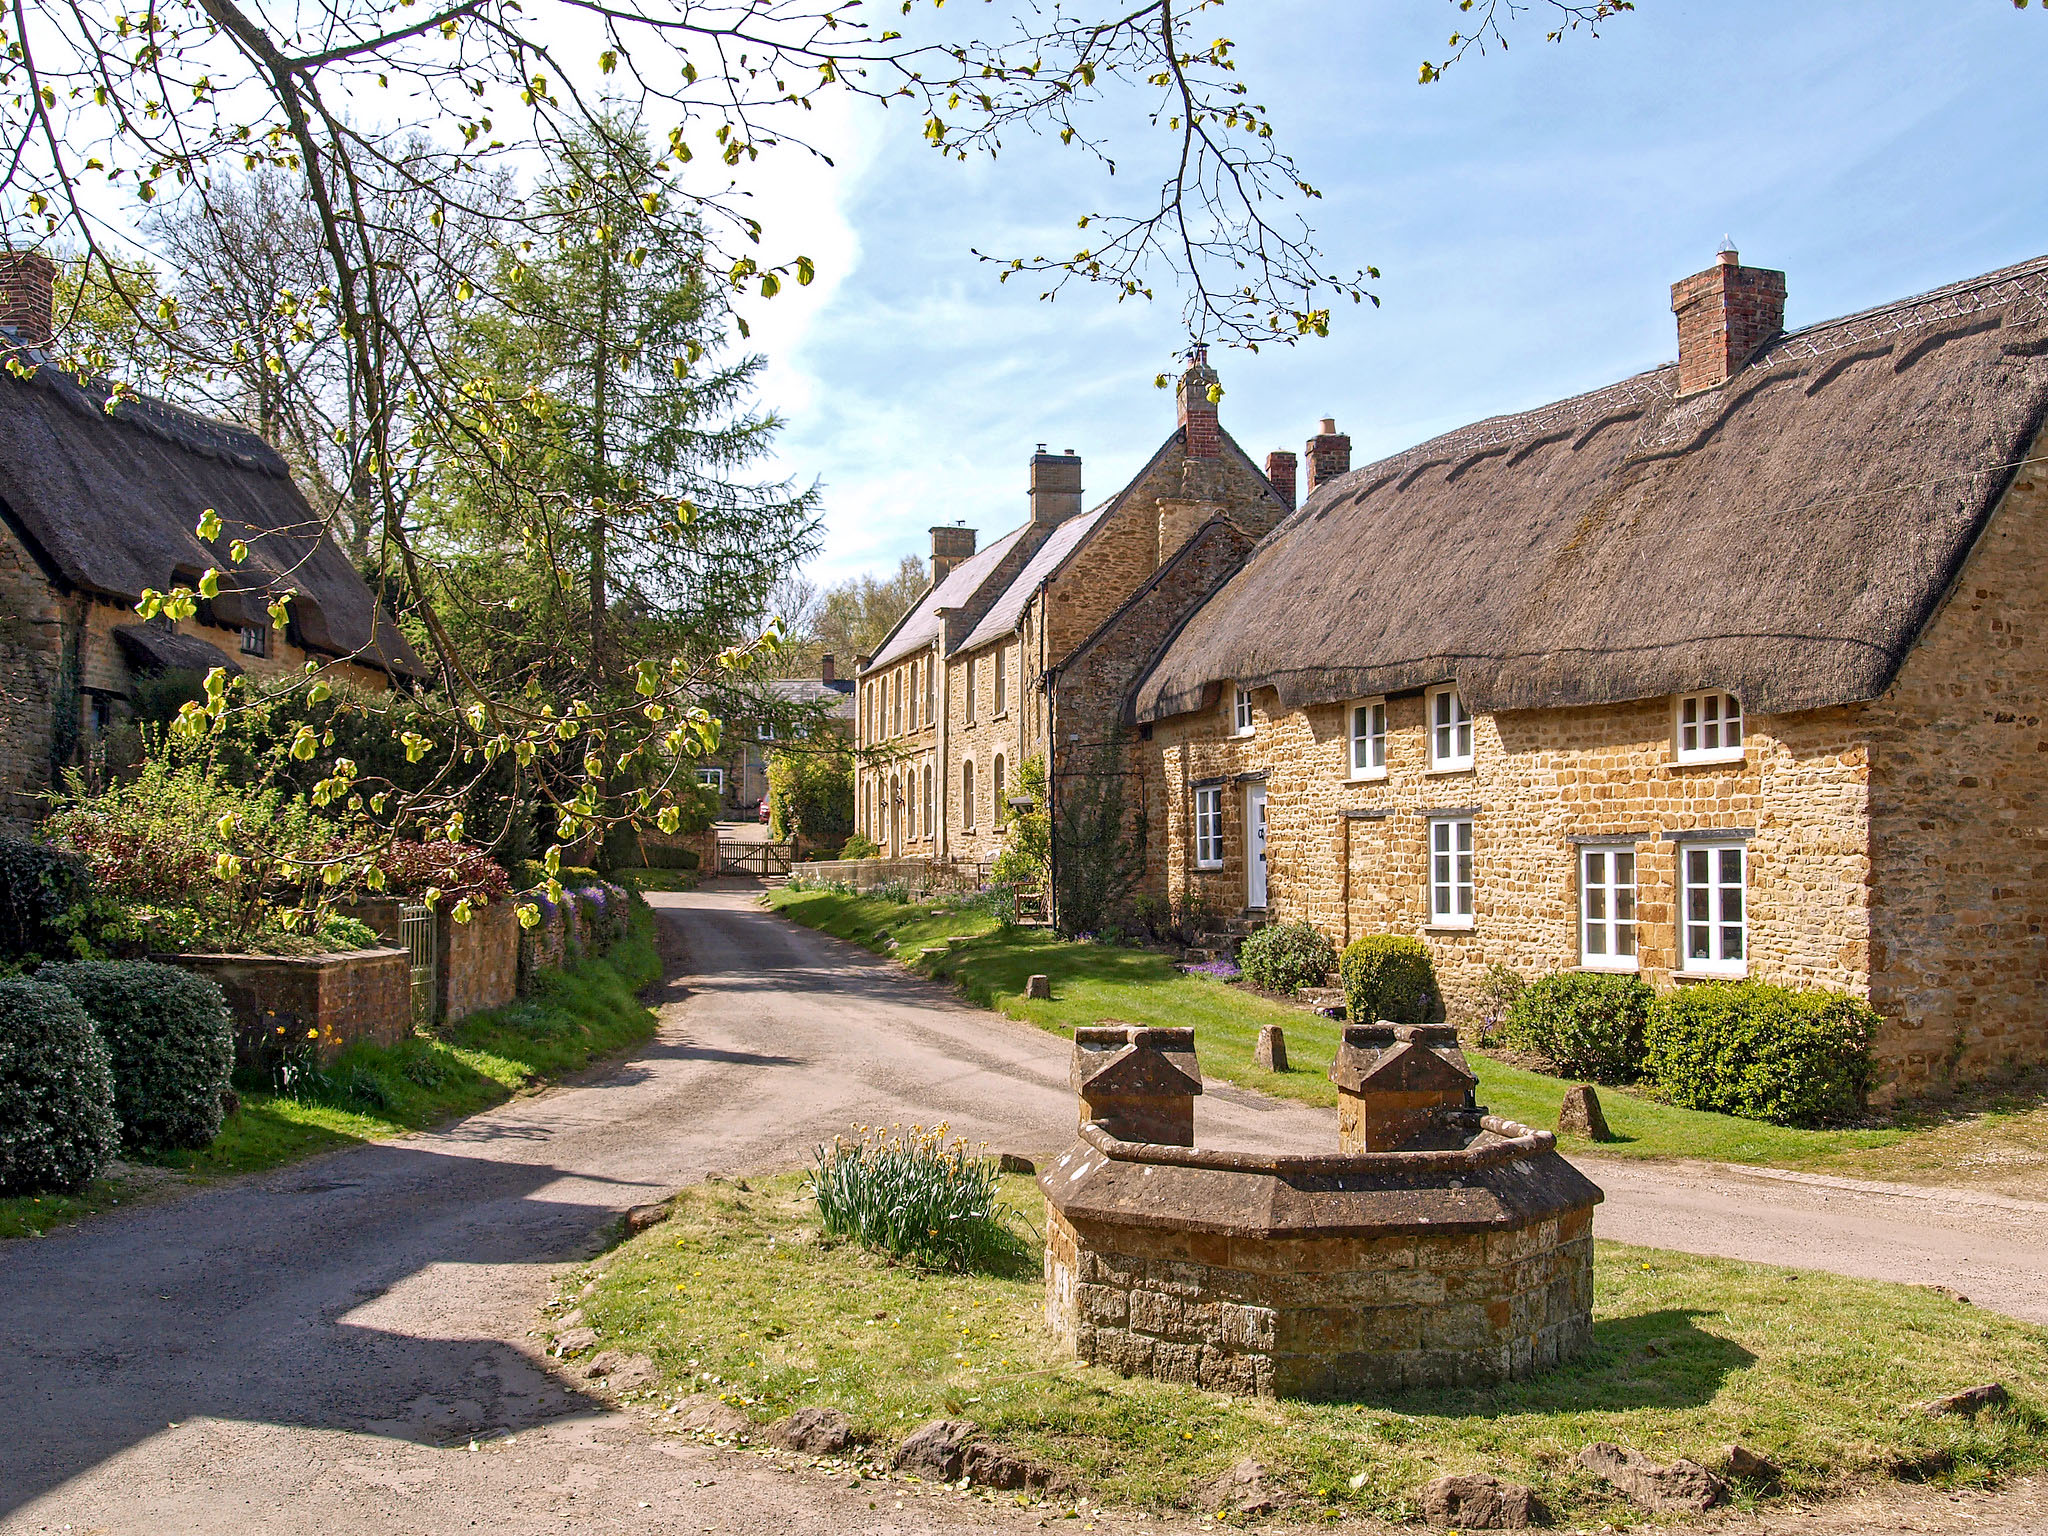 Off the beaten track Ledwell, Oxfordshire by Andrew S Brown.jpg